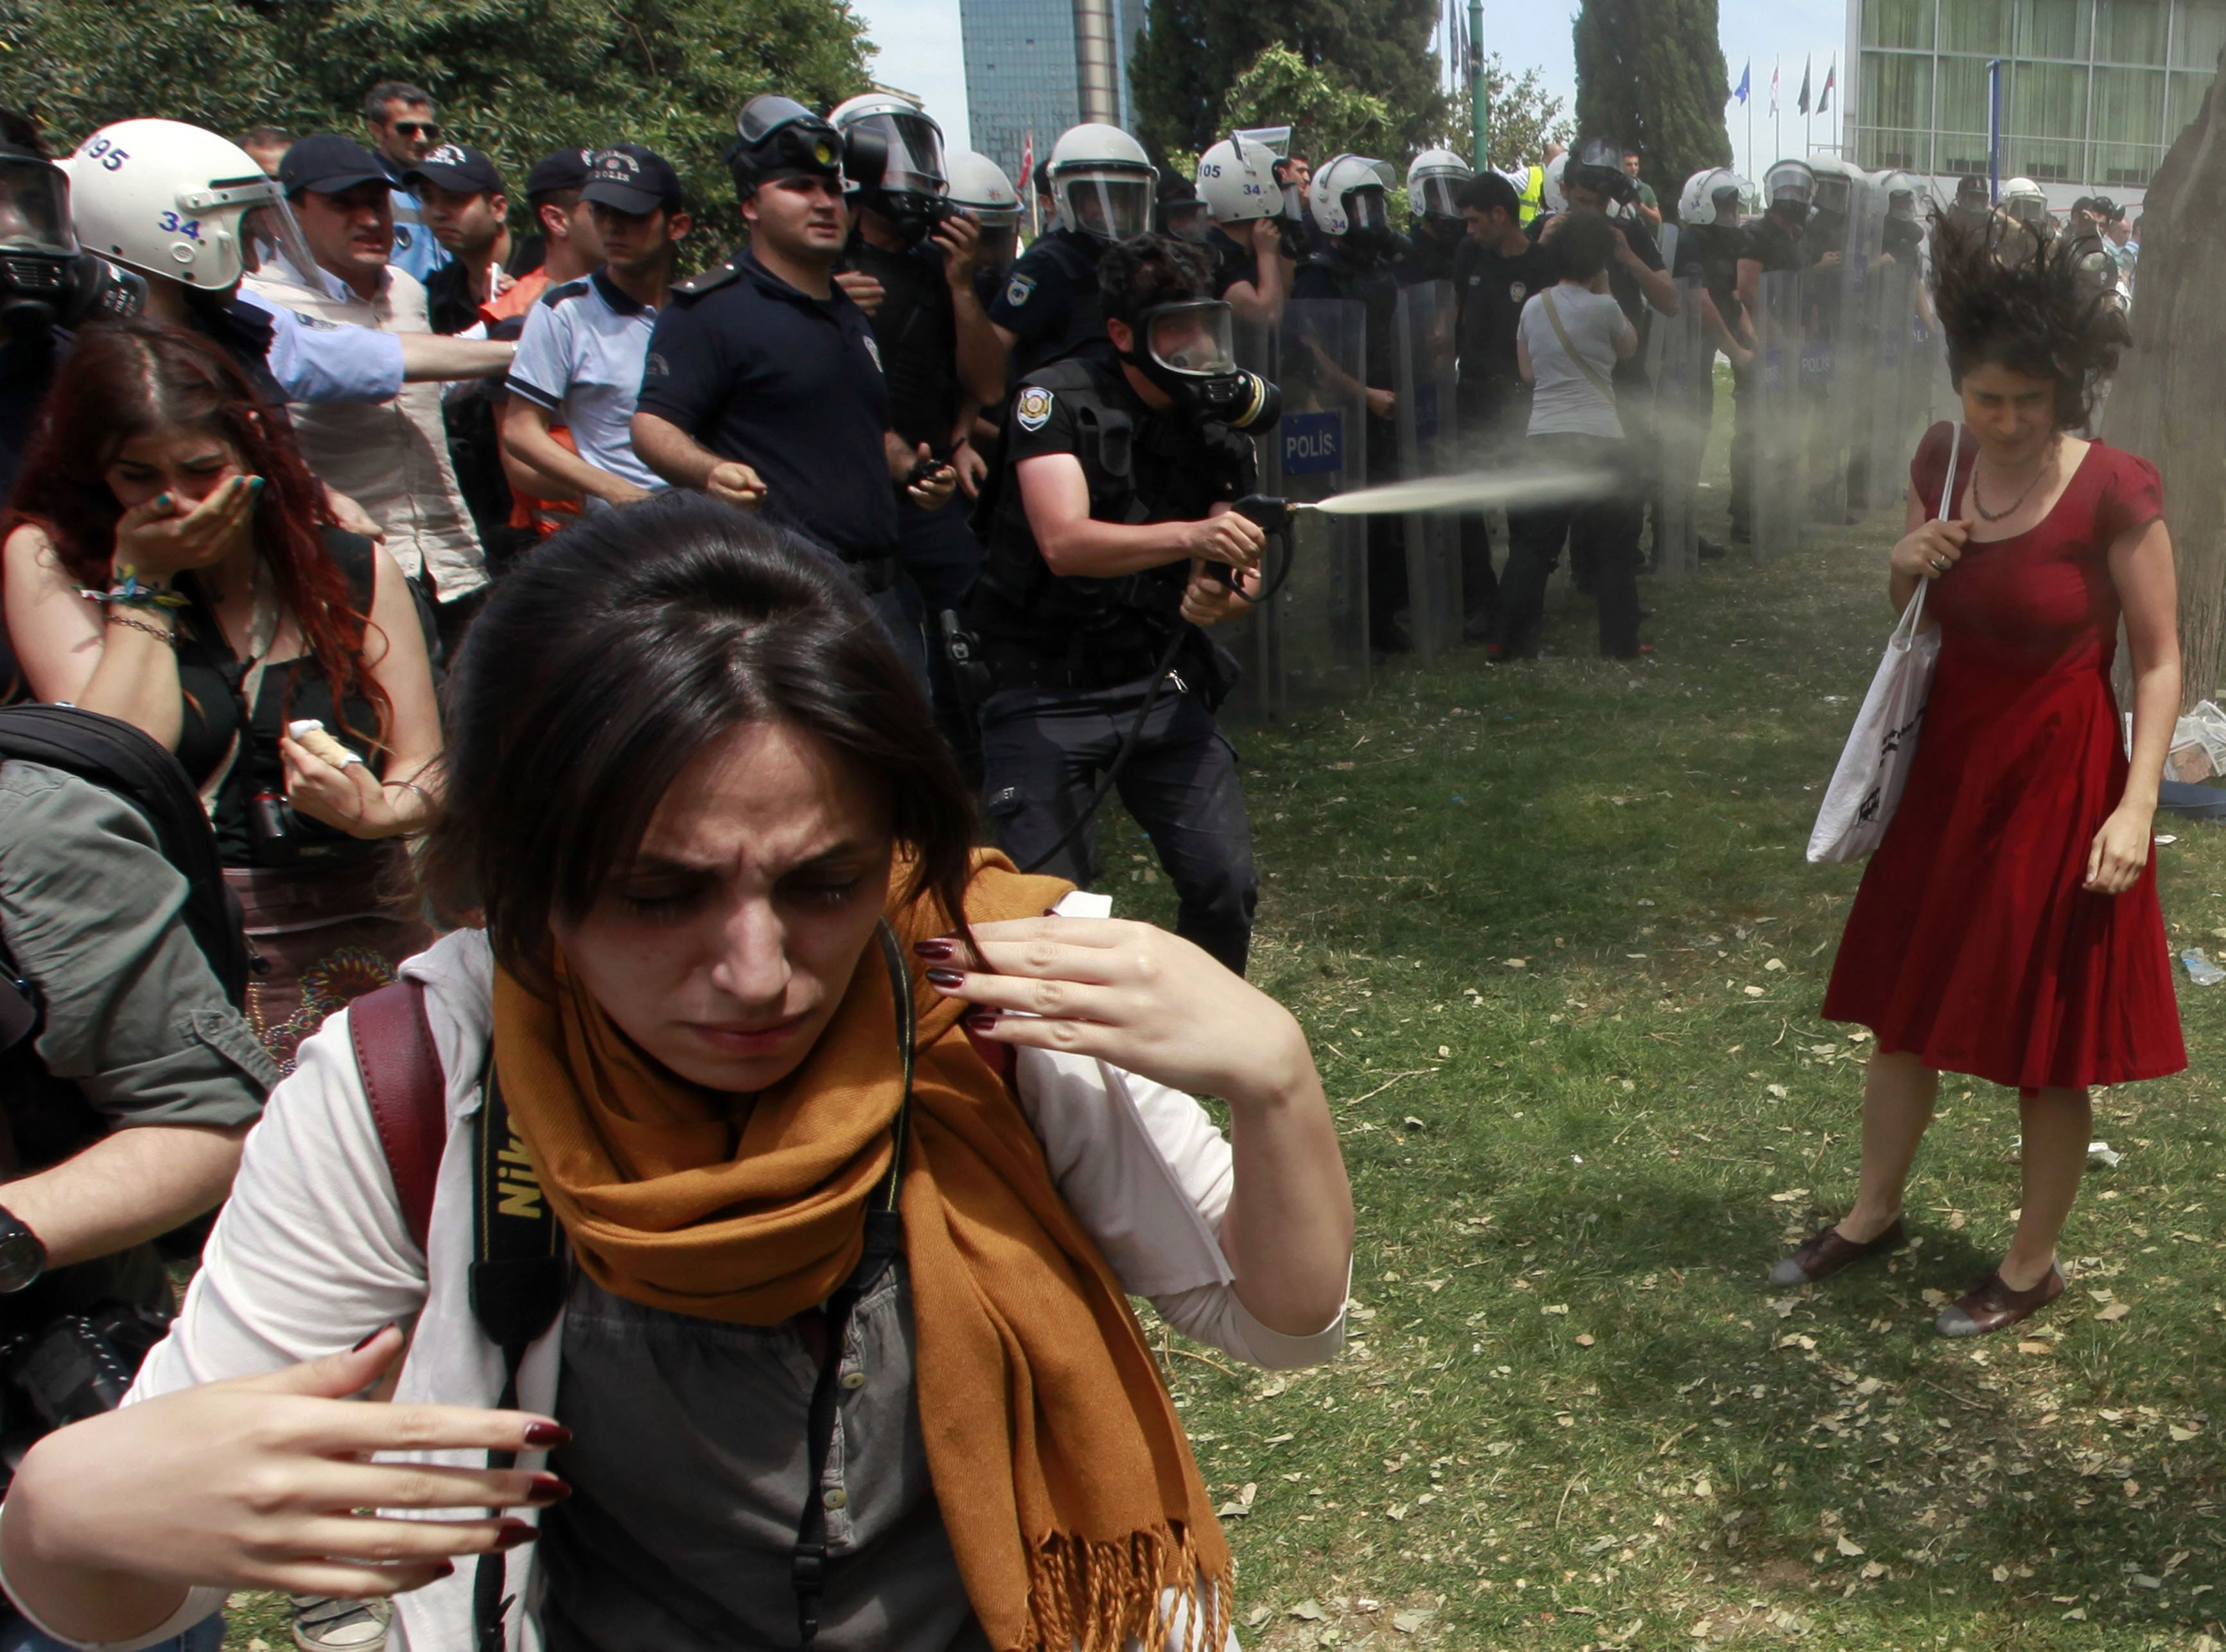 Lady in red - Gezi Protest